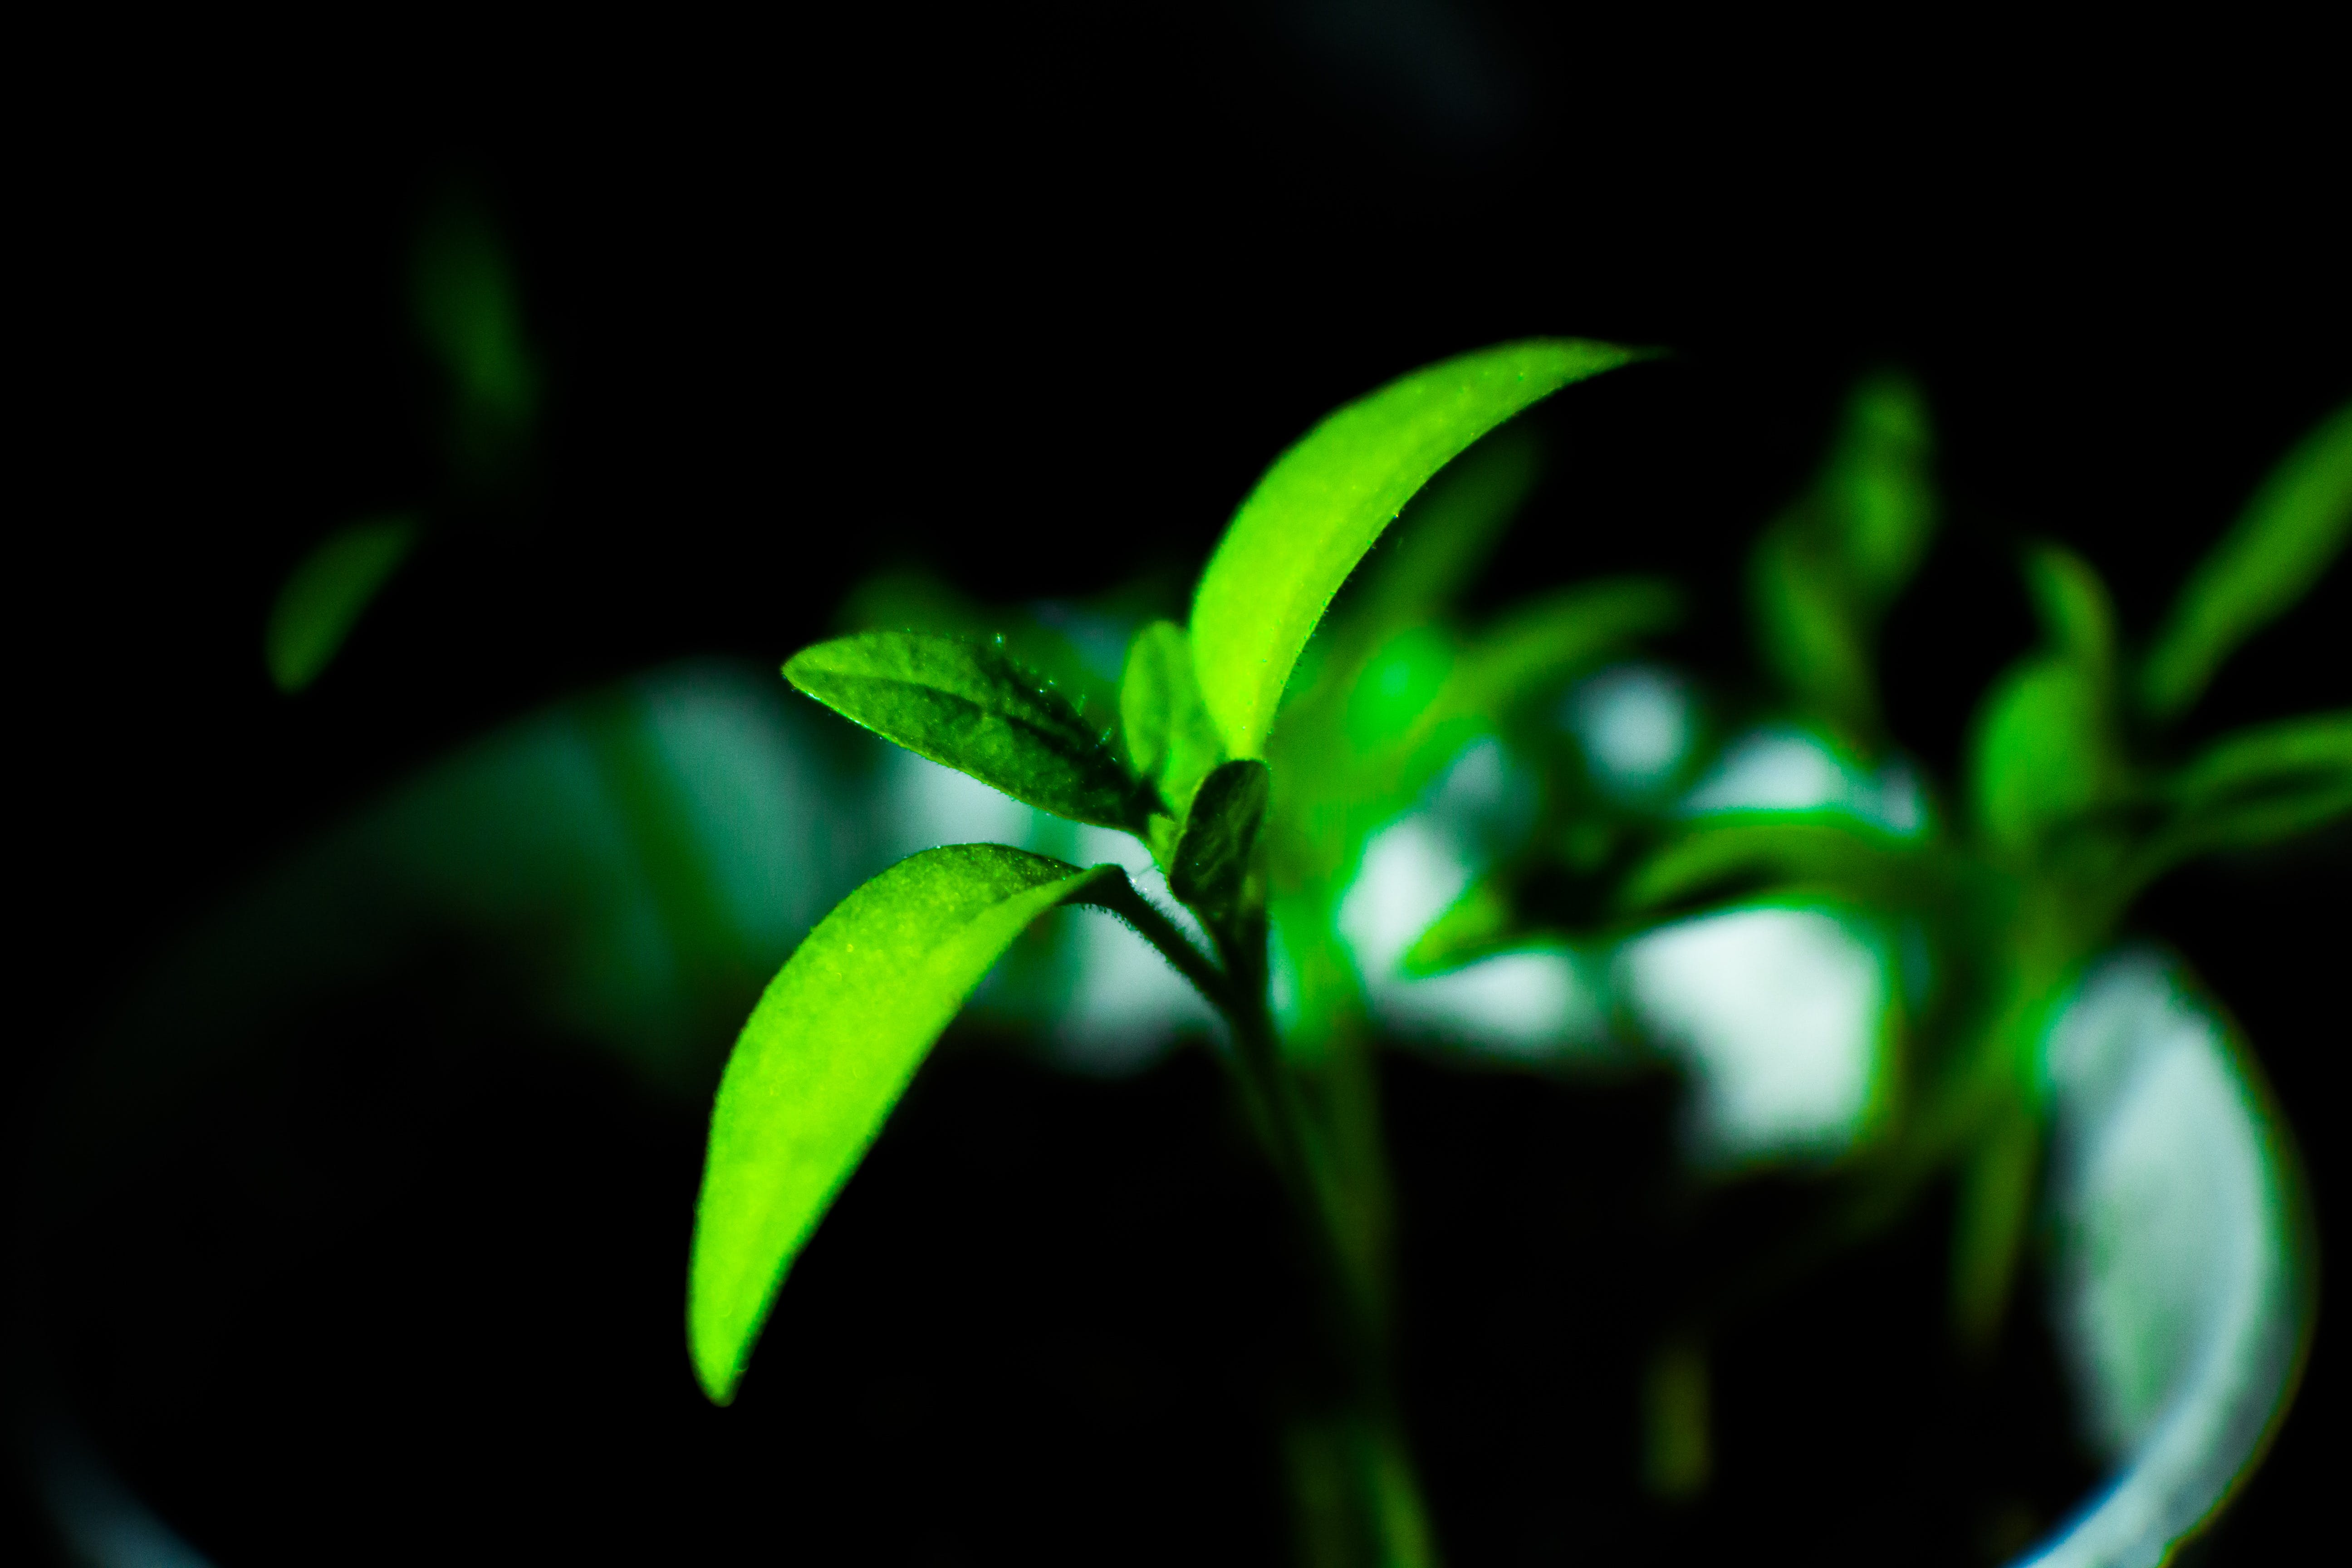 Free stock photo of nature, night, plant, green